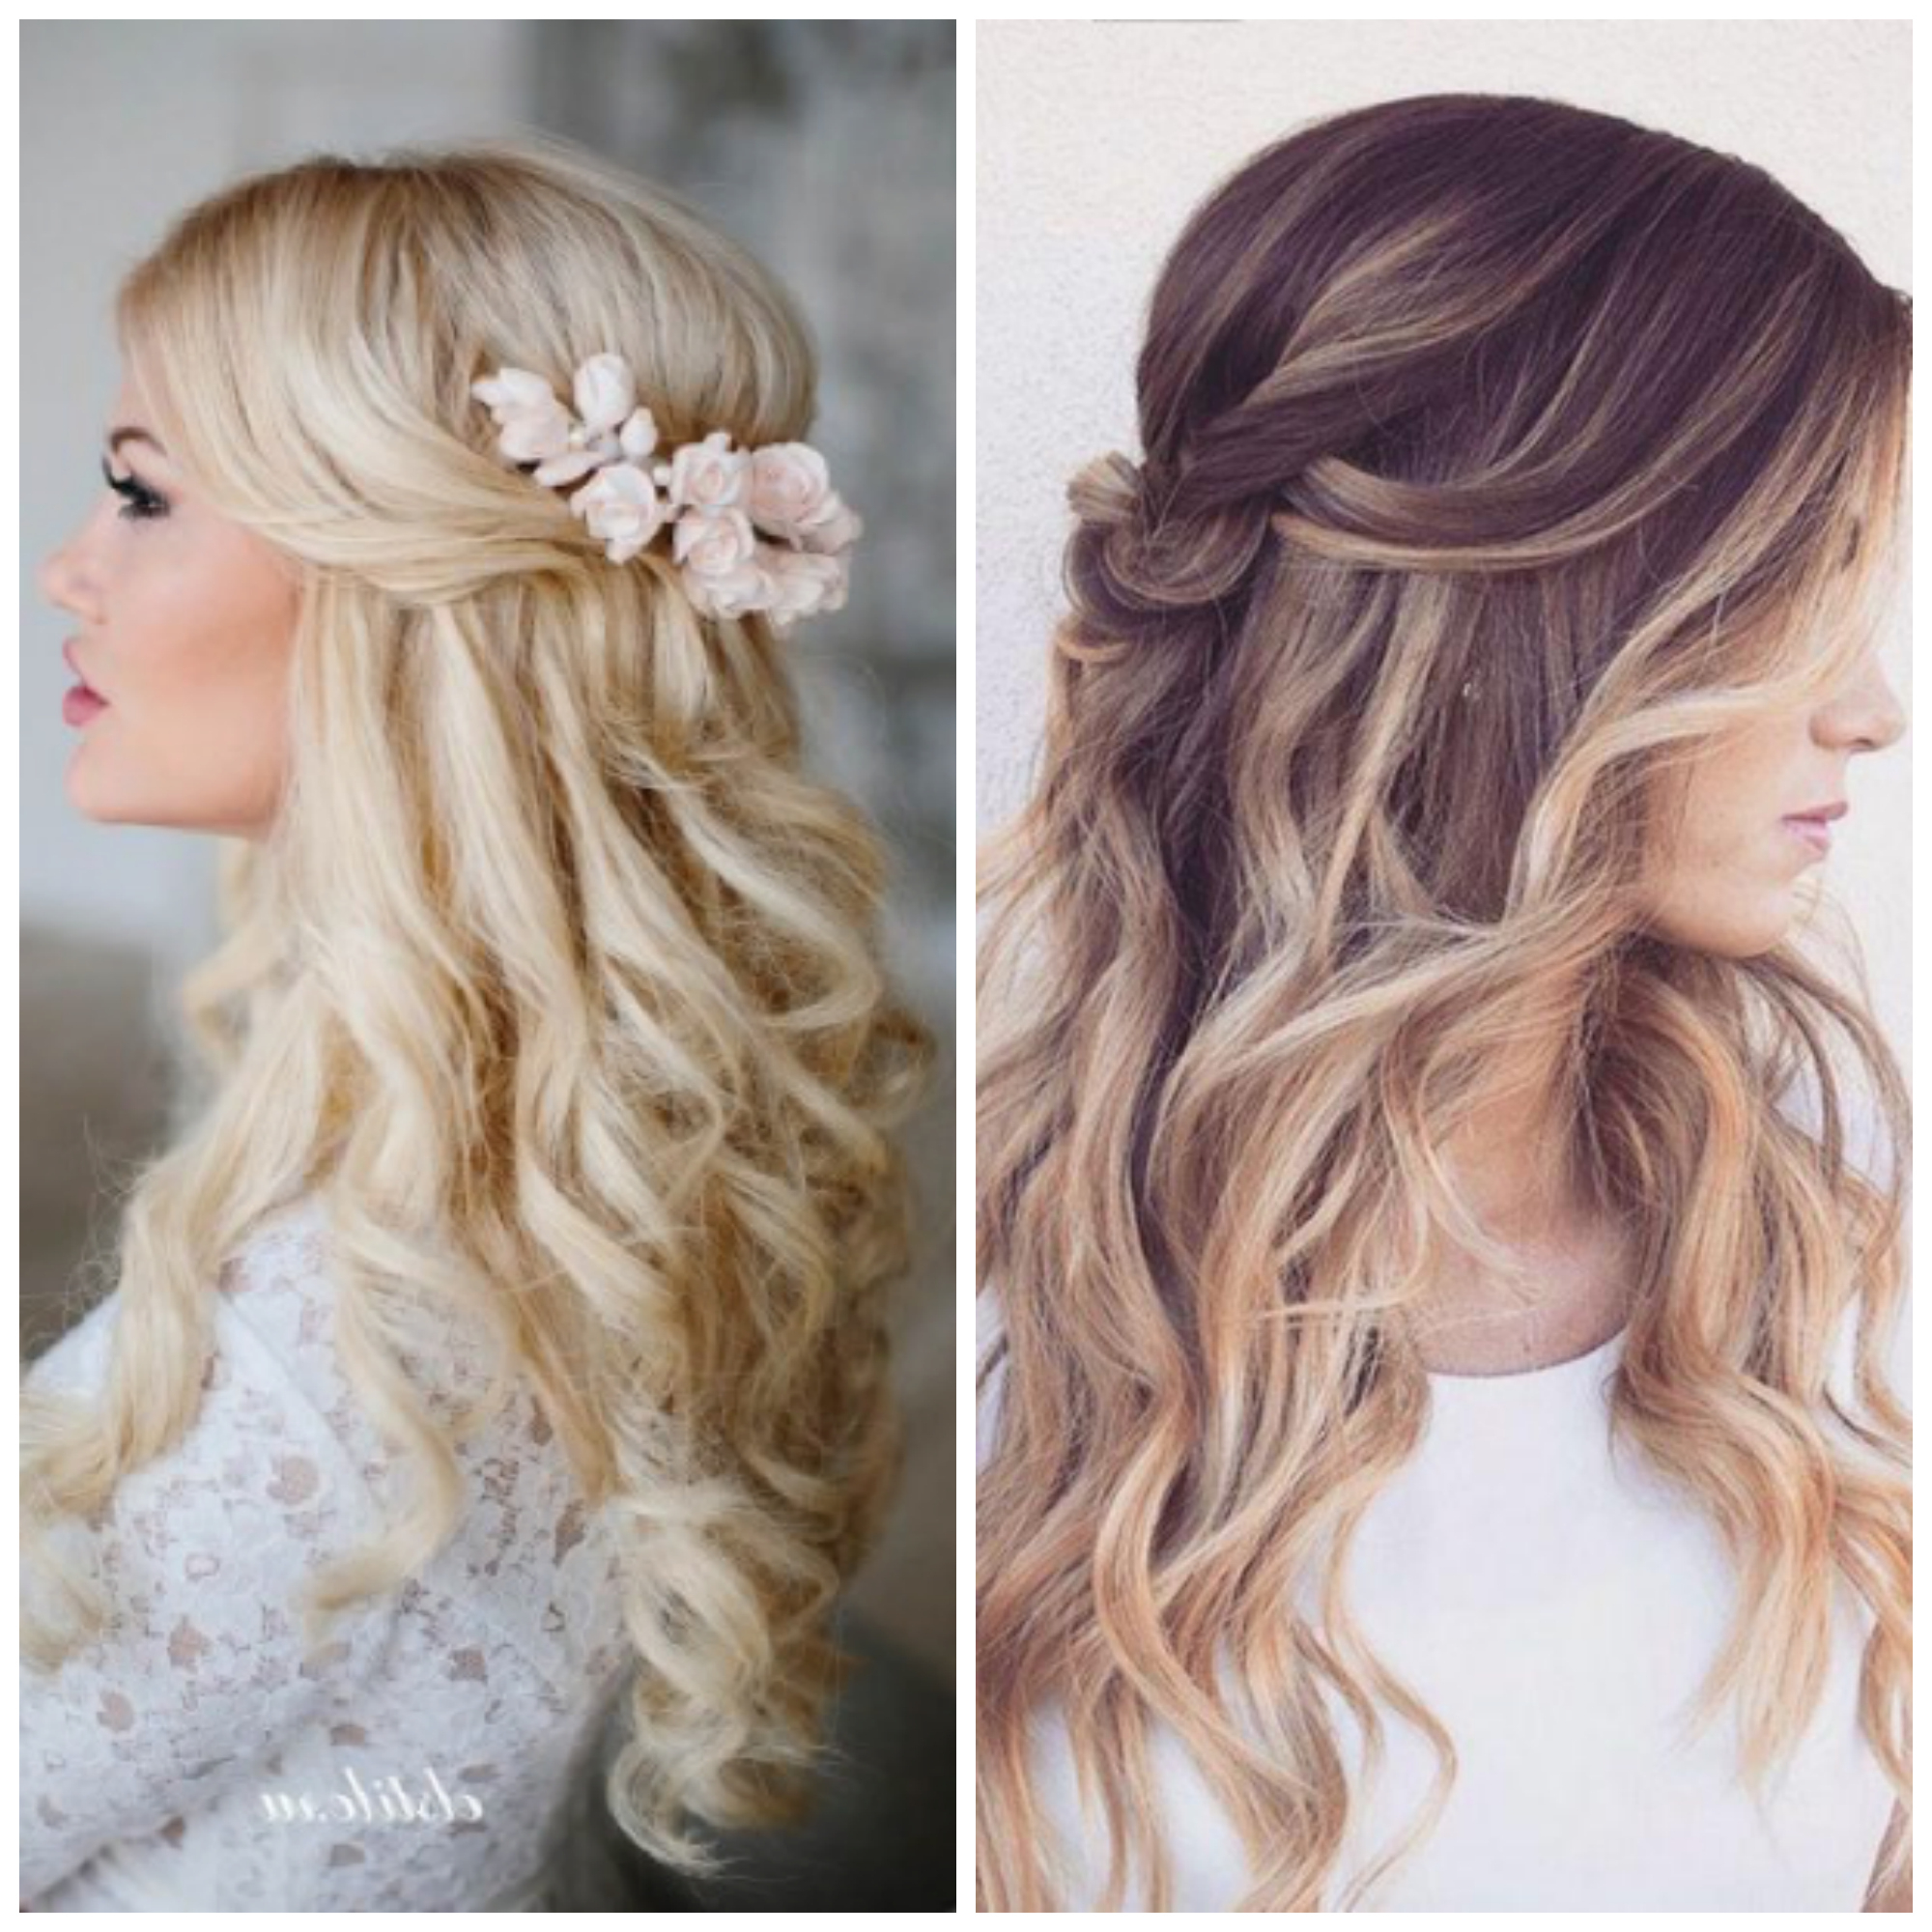 2018 Soft Shoulder Length Waves Wedding Hairstyles Intended For 5 Bridal Hairstyles For Your Wedding Day (View 2 of 20)